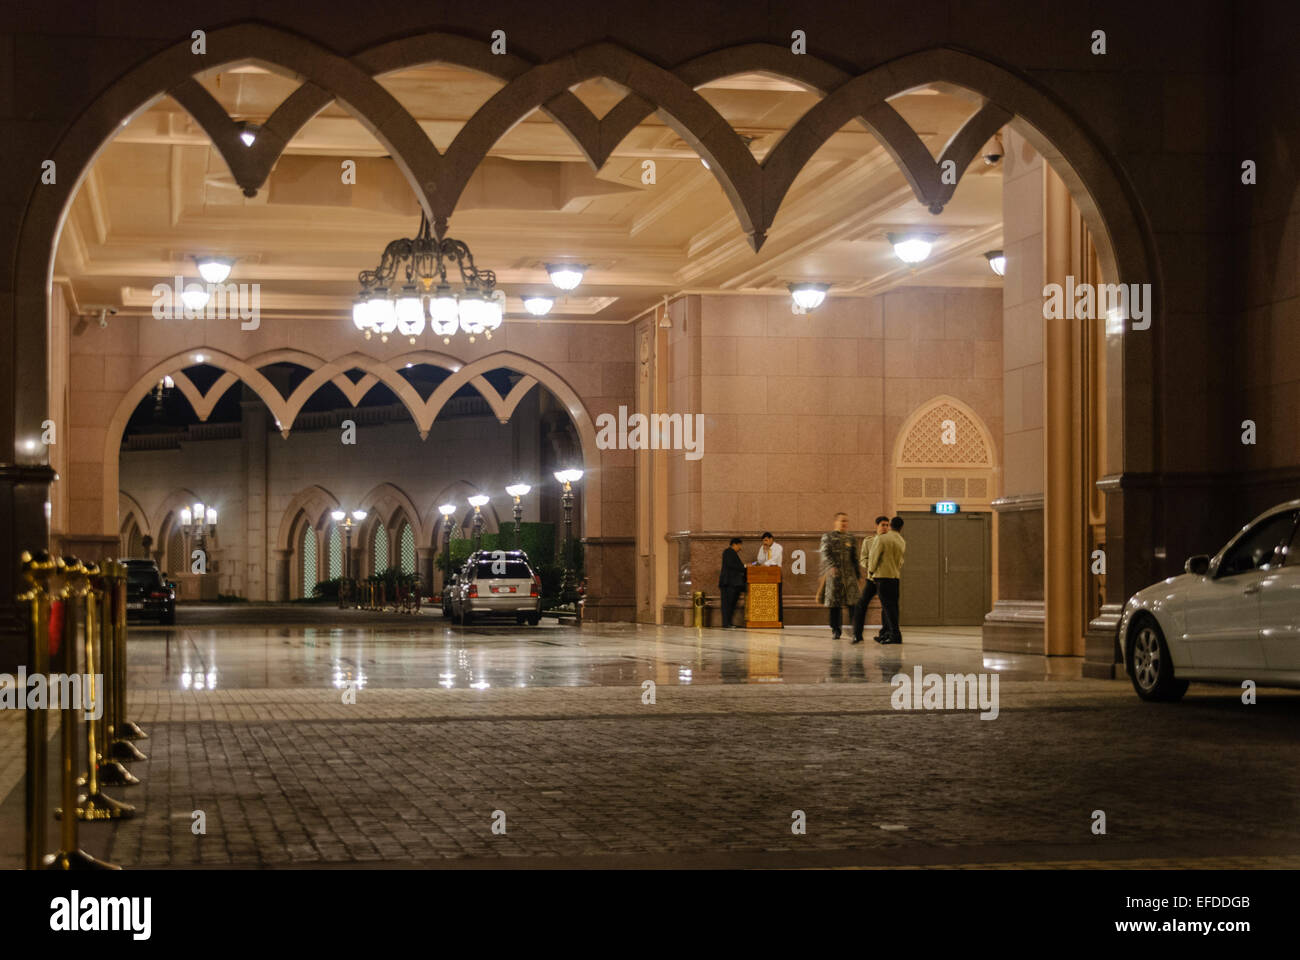 Front entrance to the Emirates Palace, Abu Dhabi, at night with concierge staff ready to greet guests - Stock Image